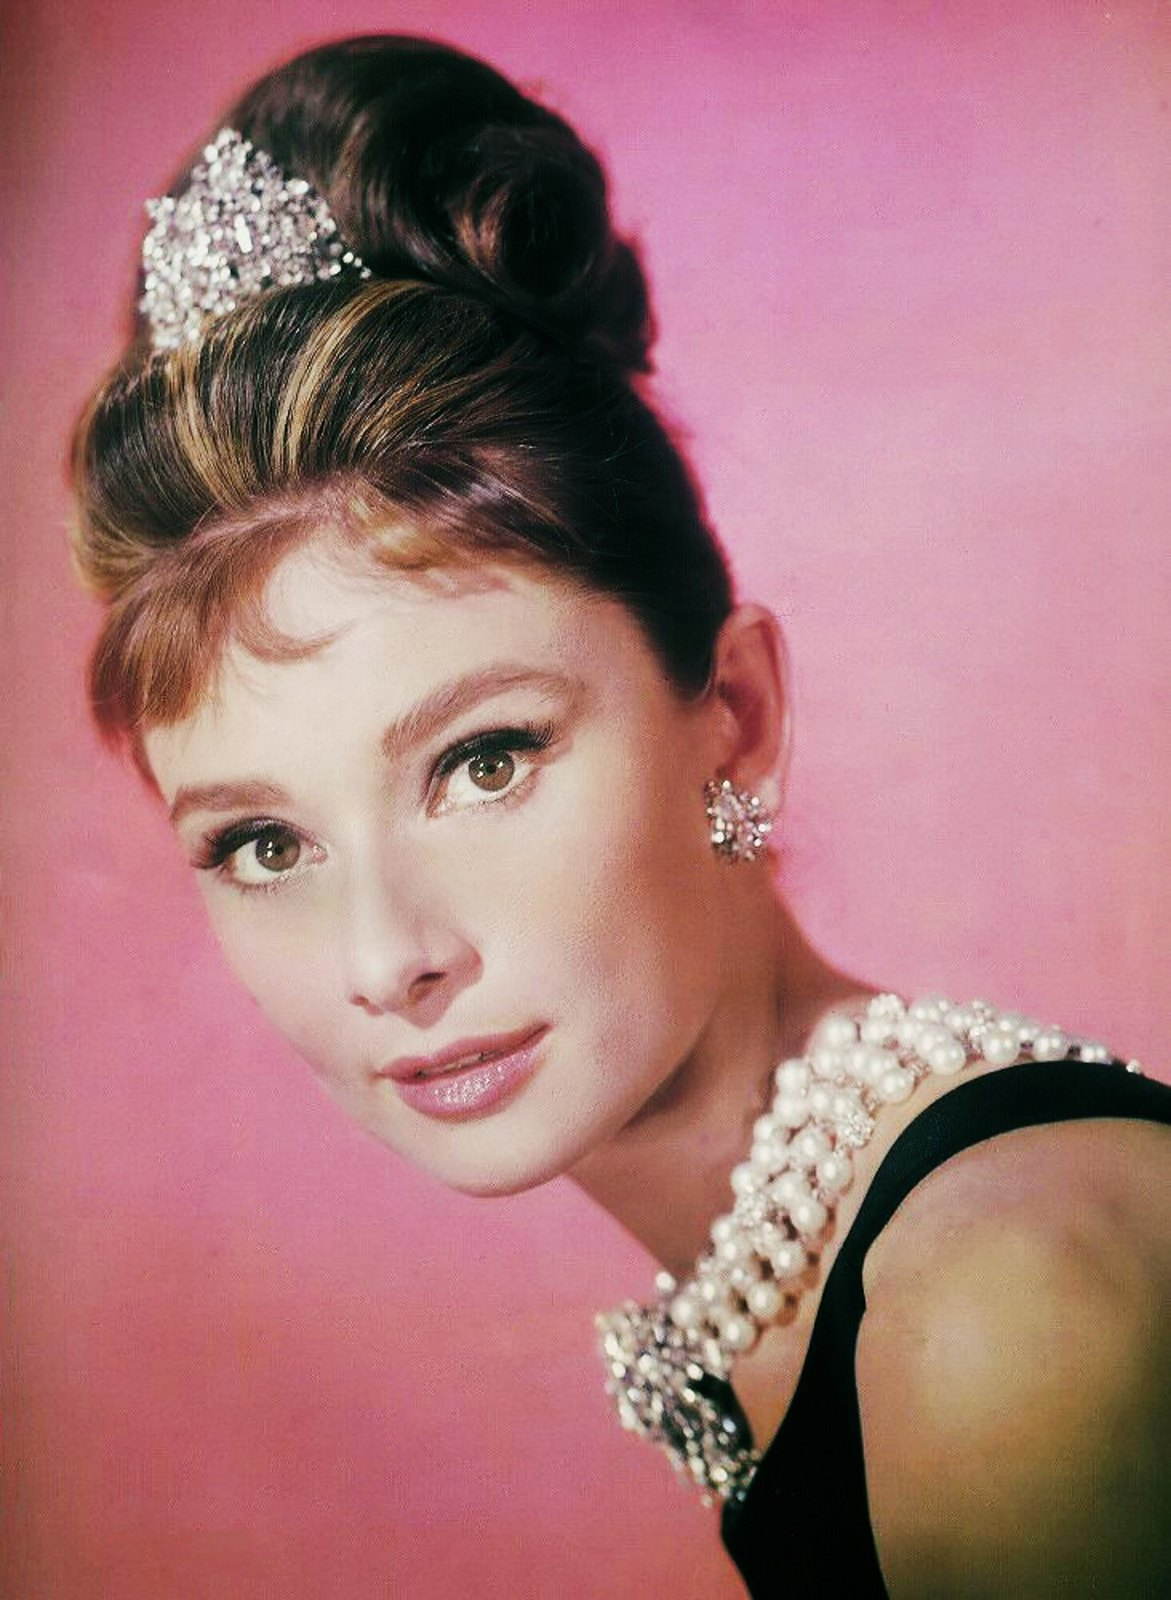 10 Surprising Facts About Audrey Hepburn 5 Minute History